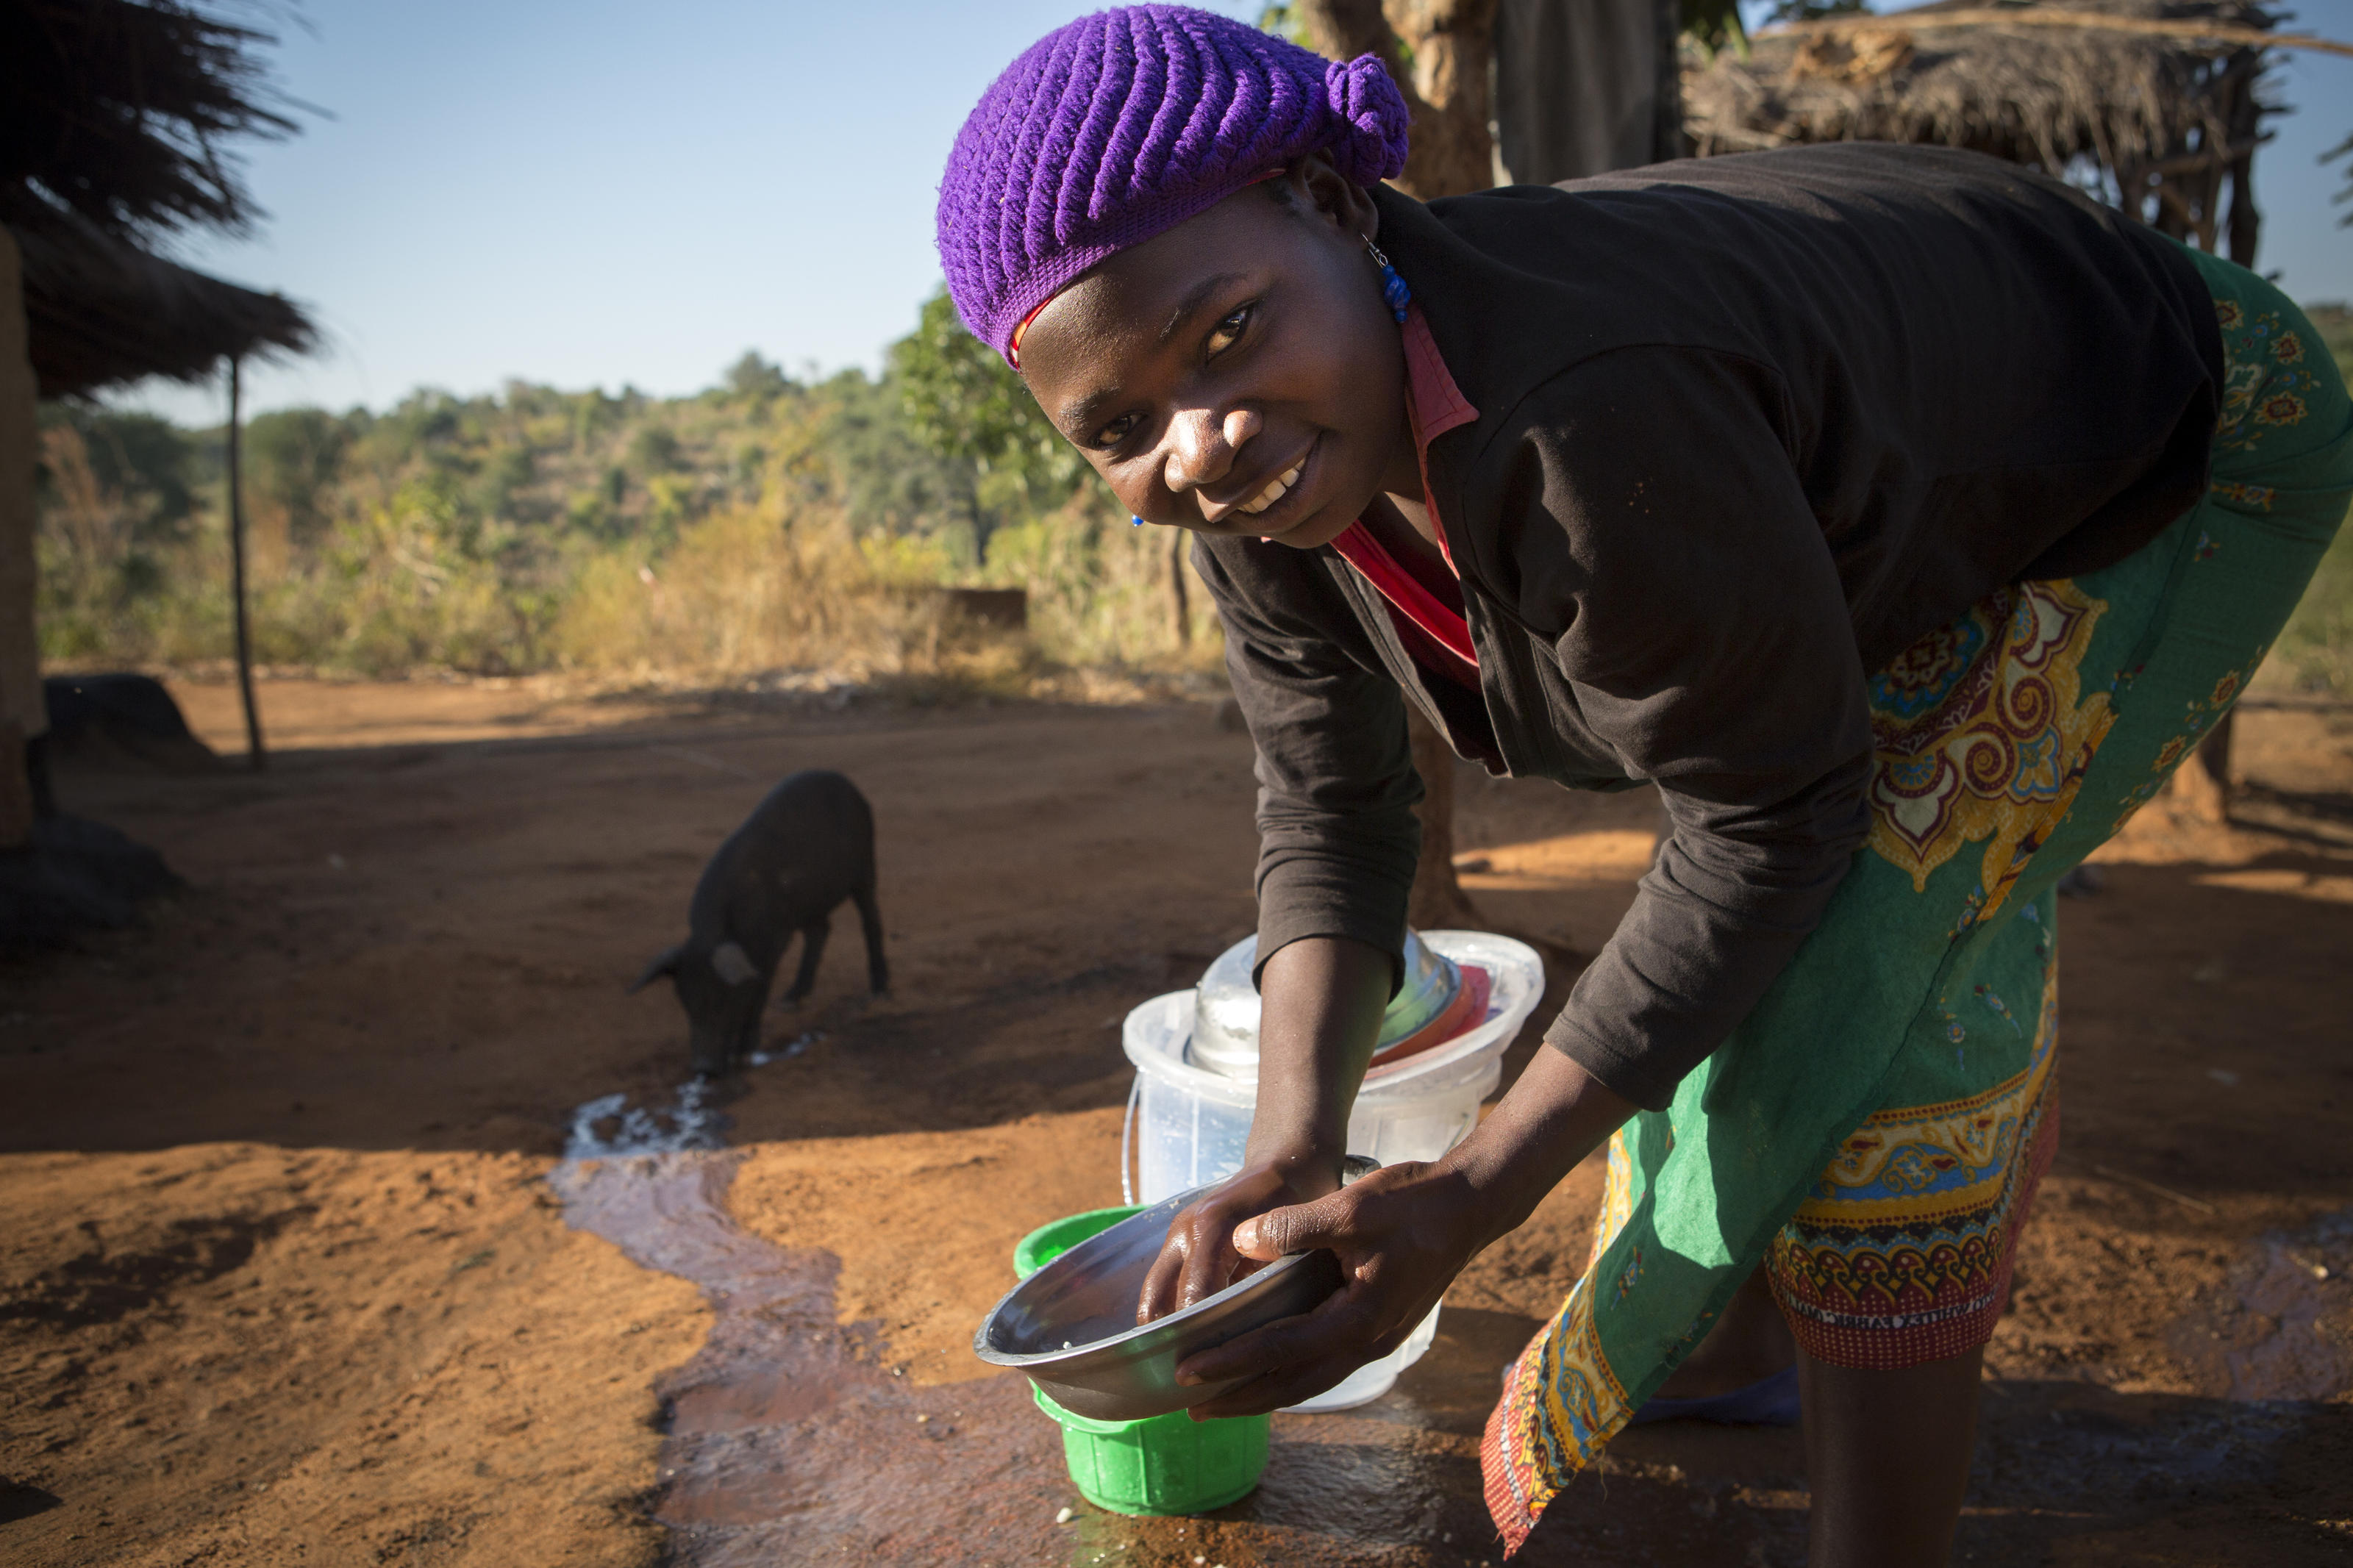 Zione washes dishes with clean water outside her home in the village of Chandaka, Malawi.